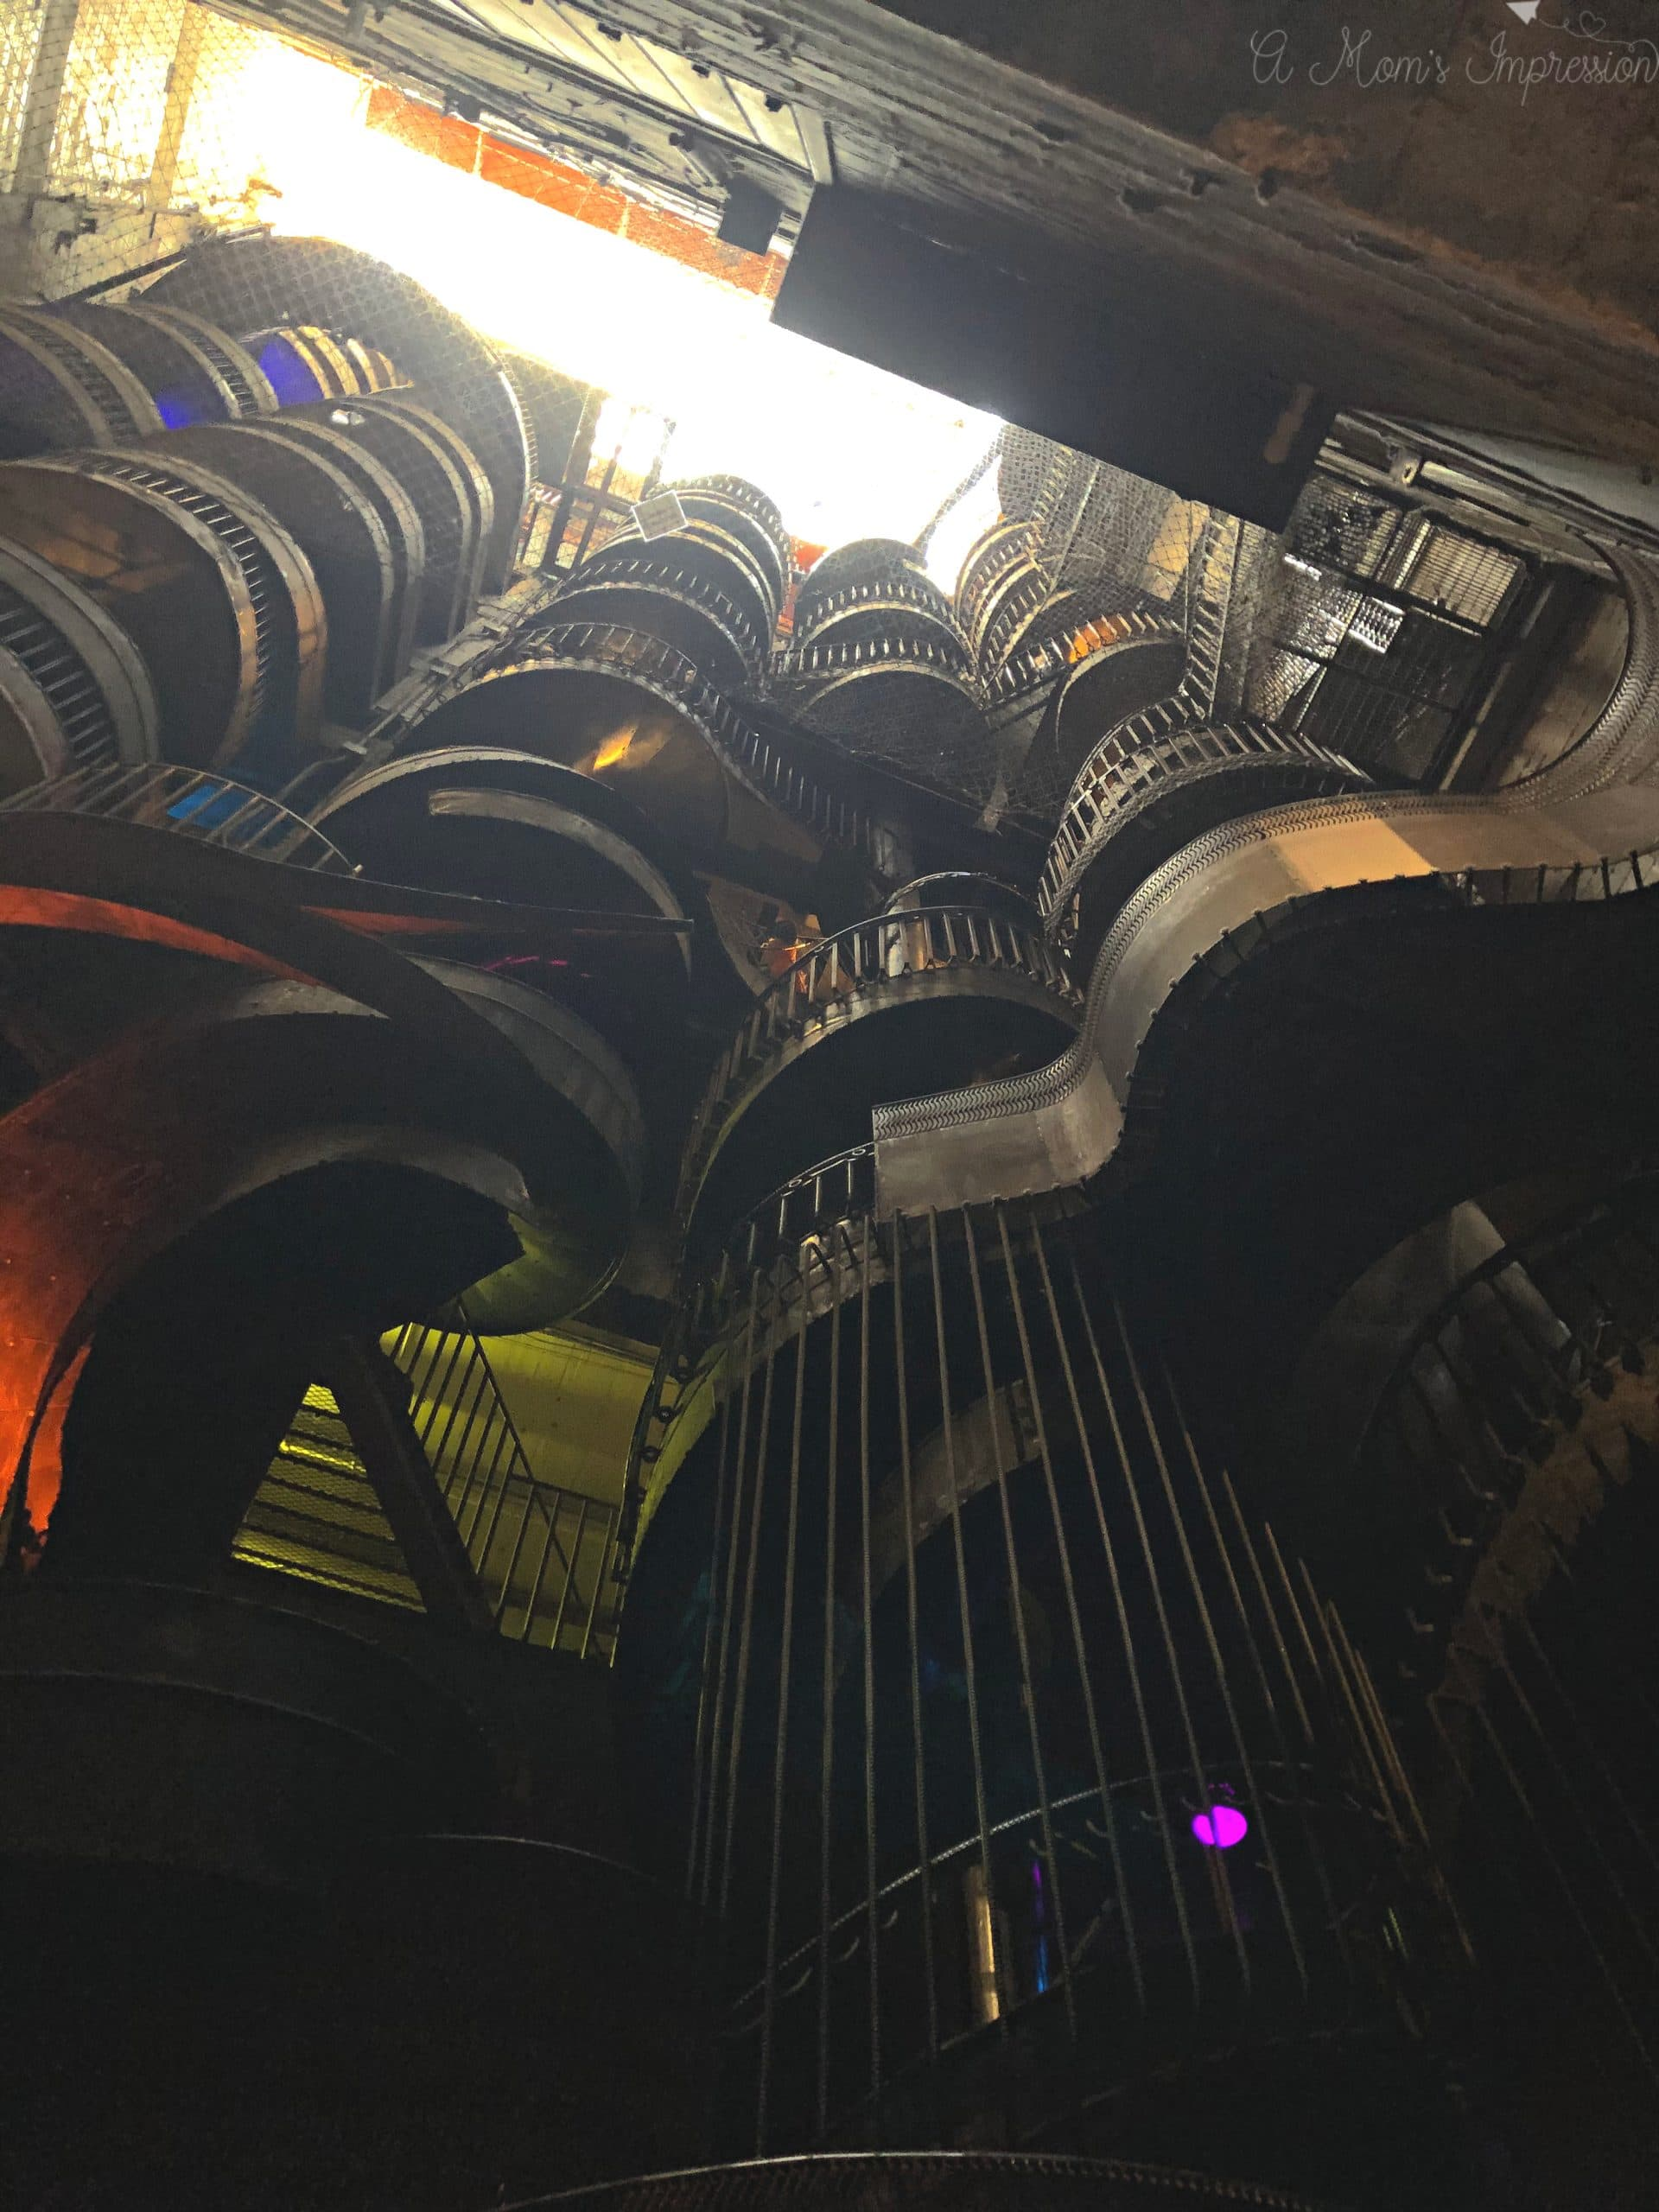 City Museum St. Louis Slide